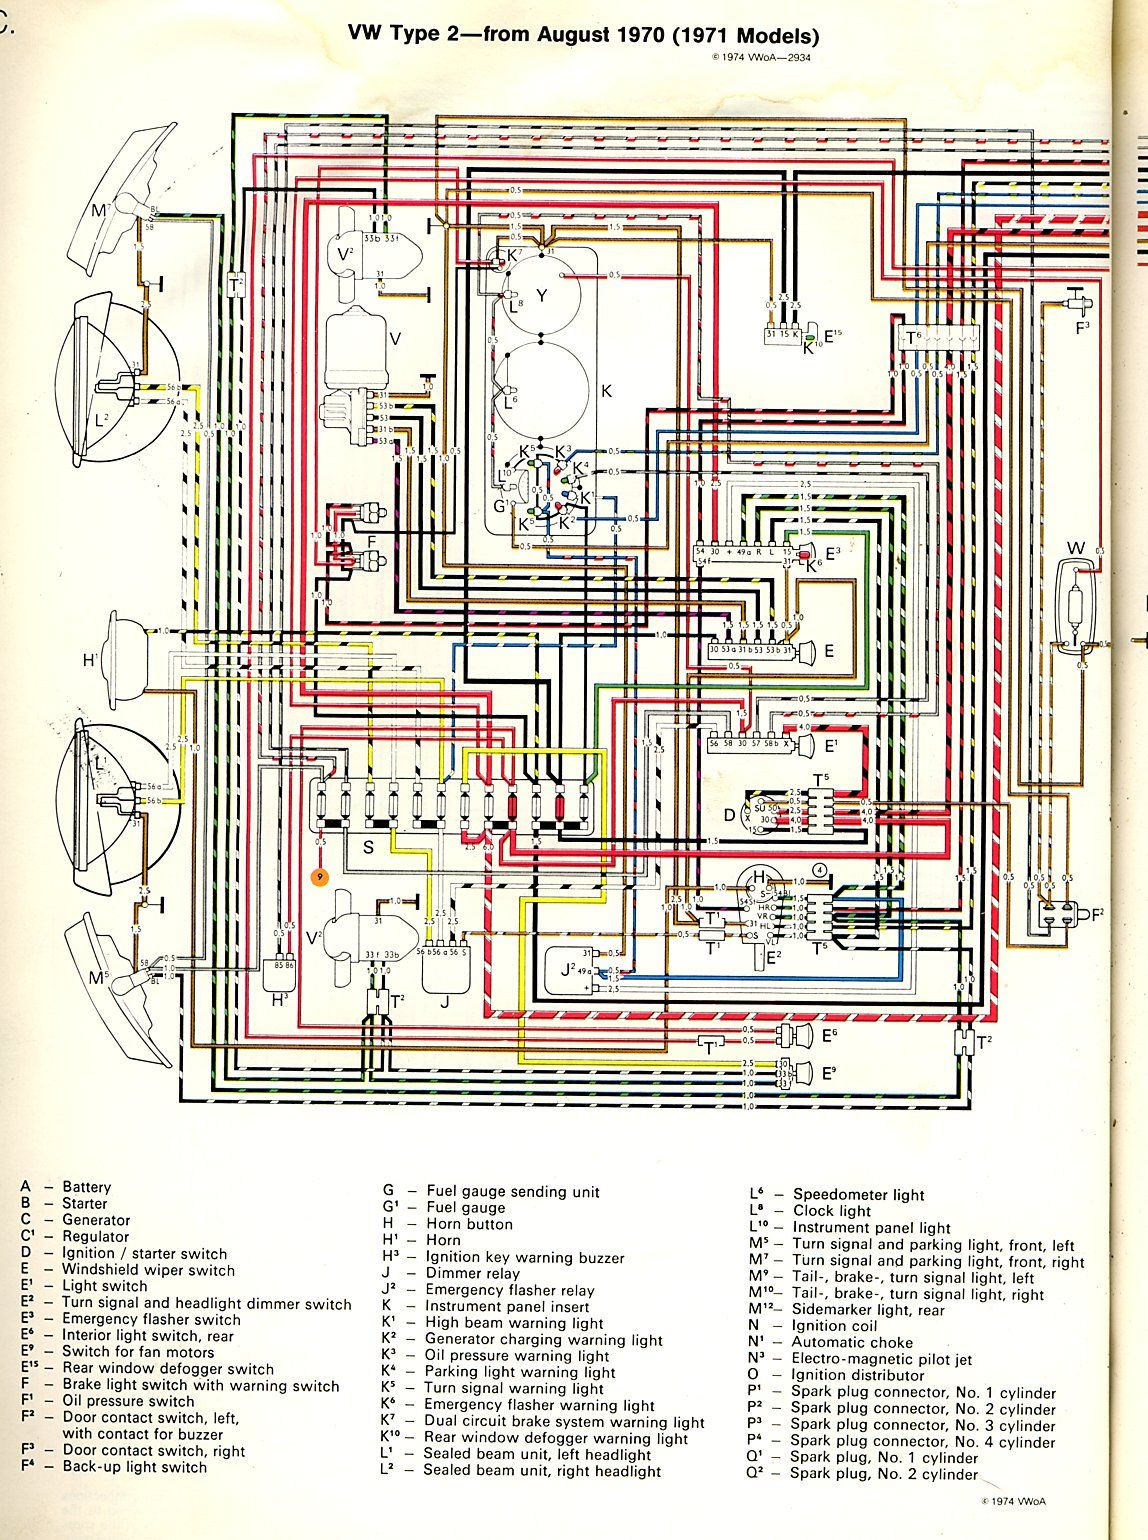 26730f3f6ceb3f1e1b50646c57249616 1971 bus wiring diagram thegoldenbug com stuff to try 1971 vw beetle wiring diagram at virtualis.co